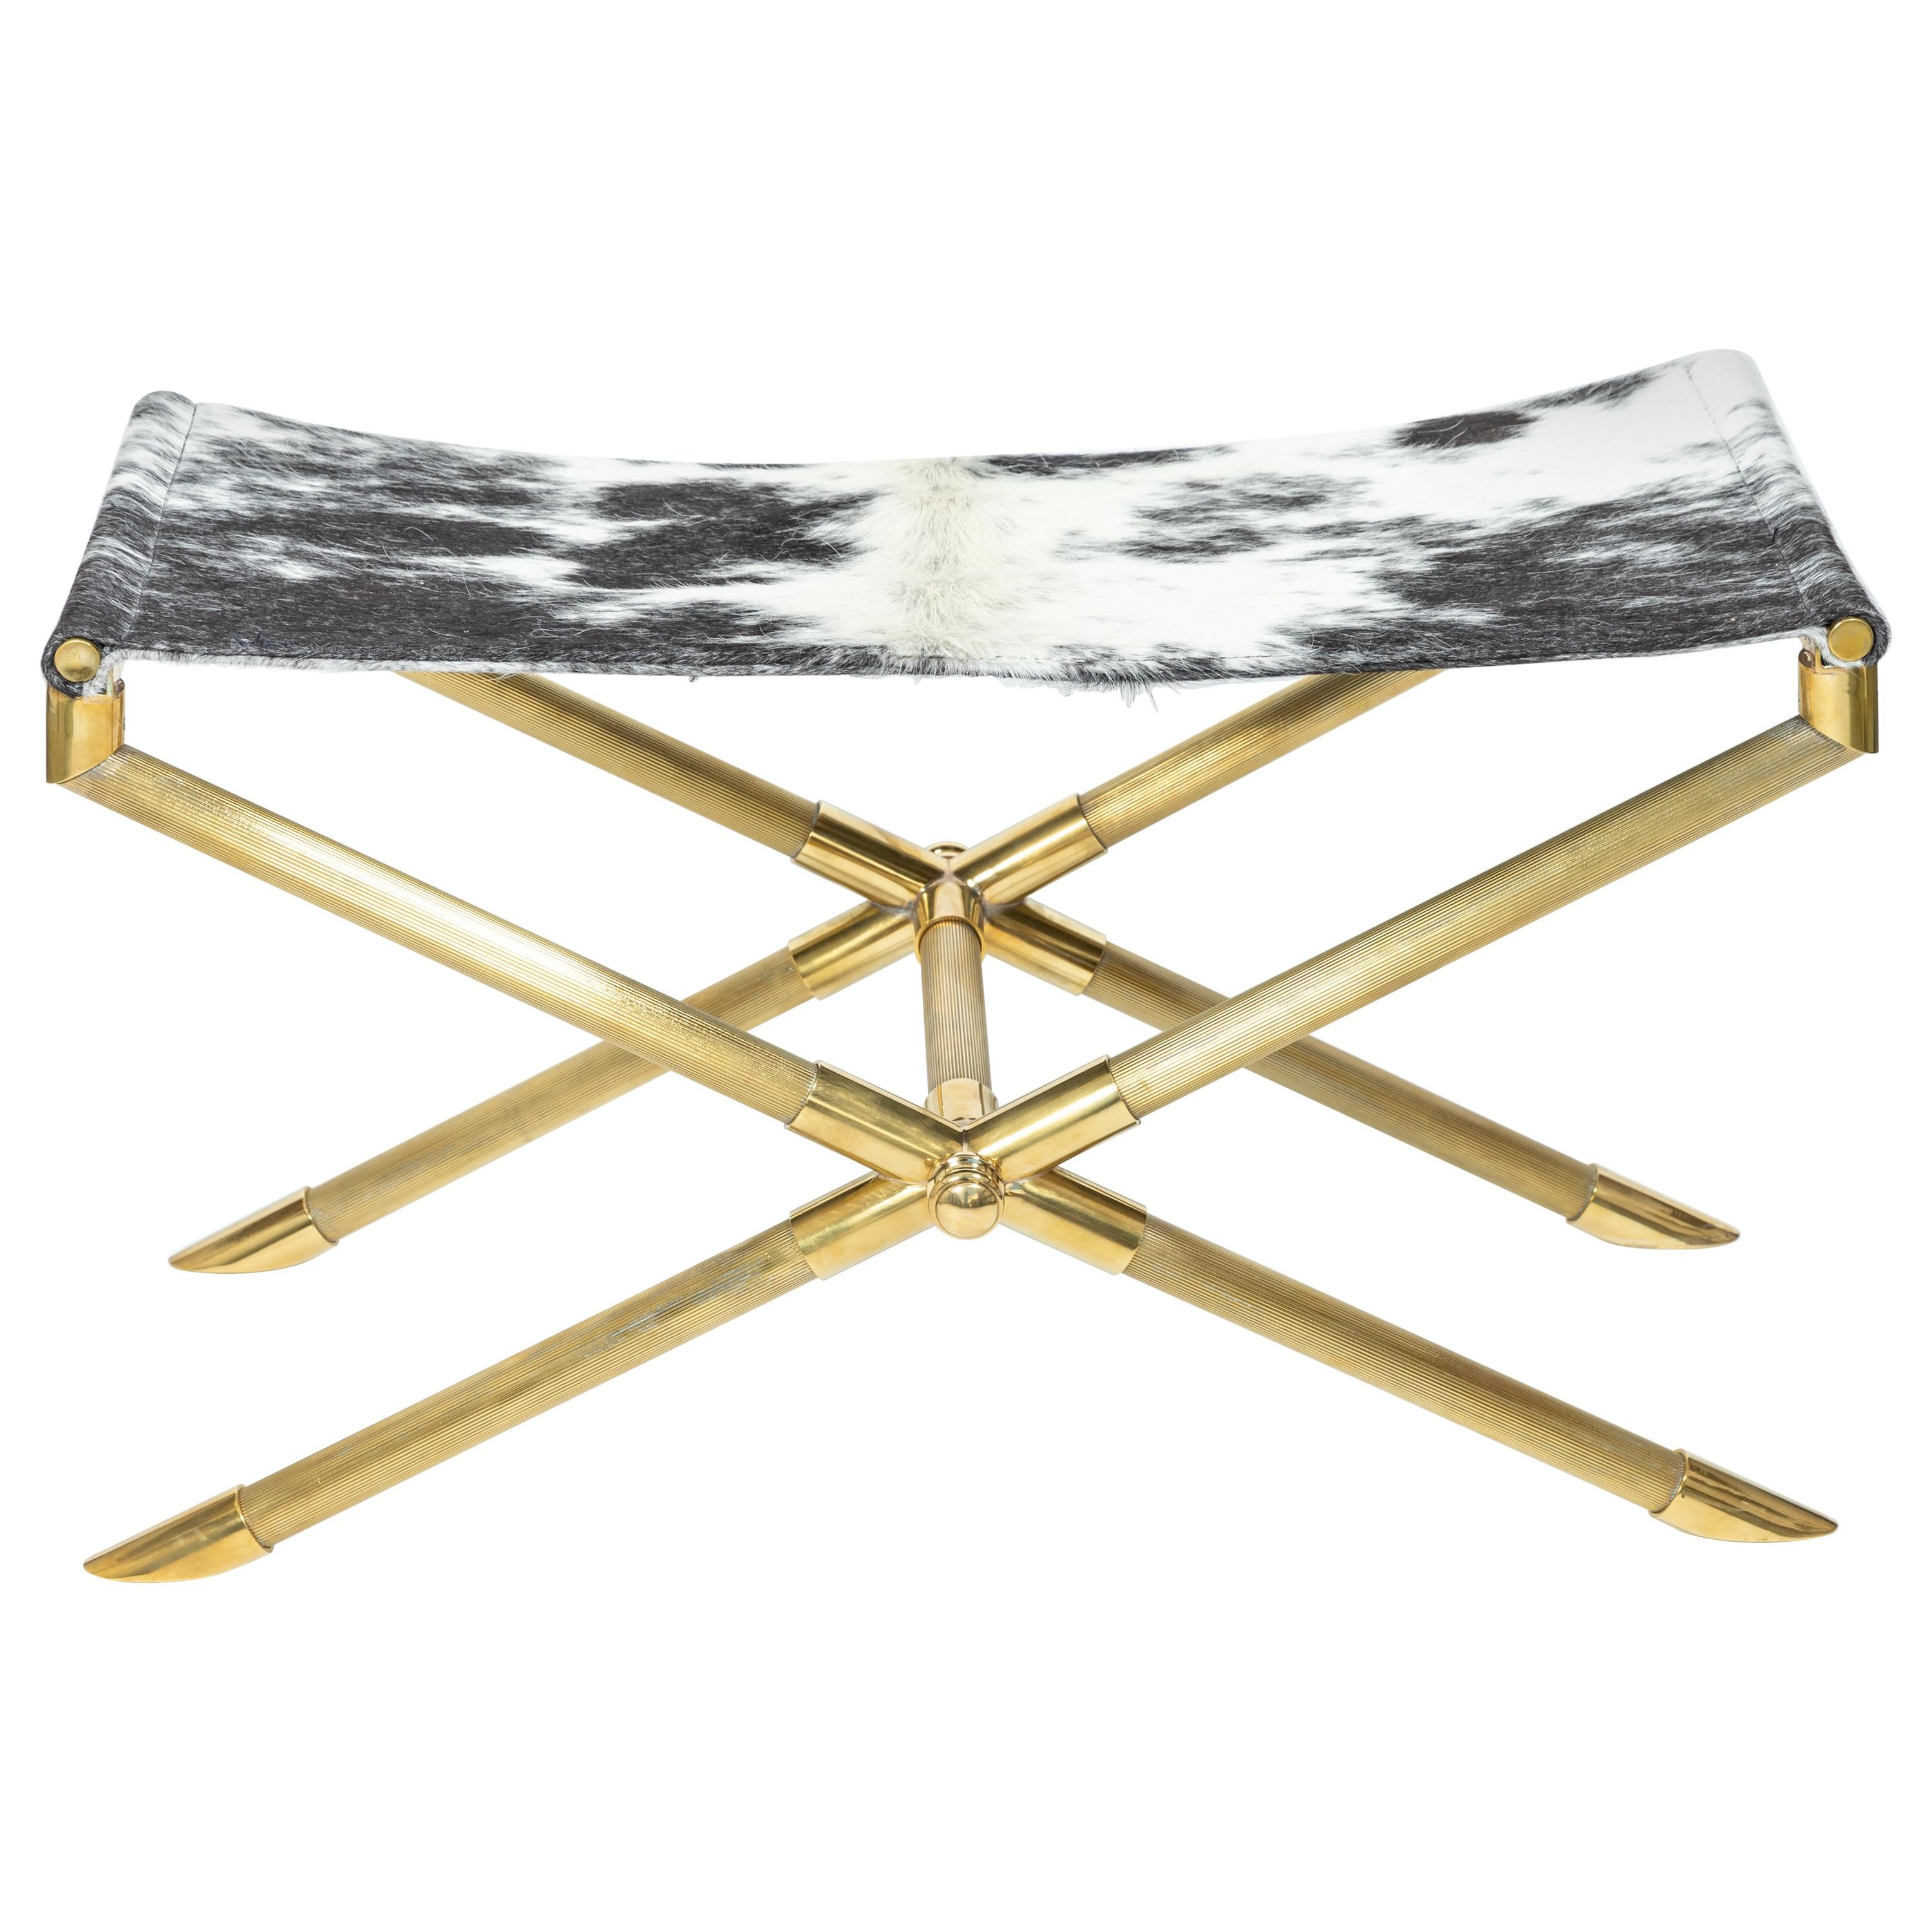 Brass Campaign Style Bench with Cowhide Strap Seat